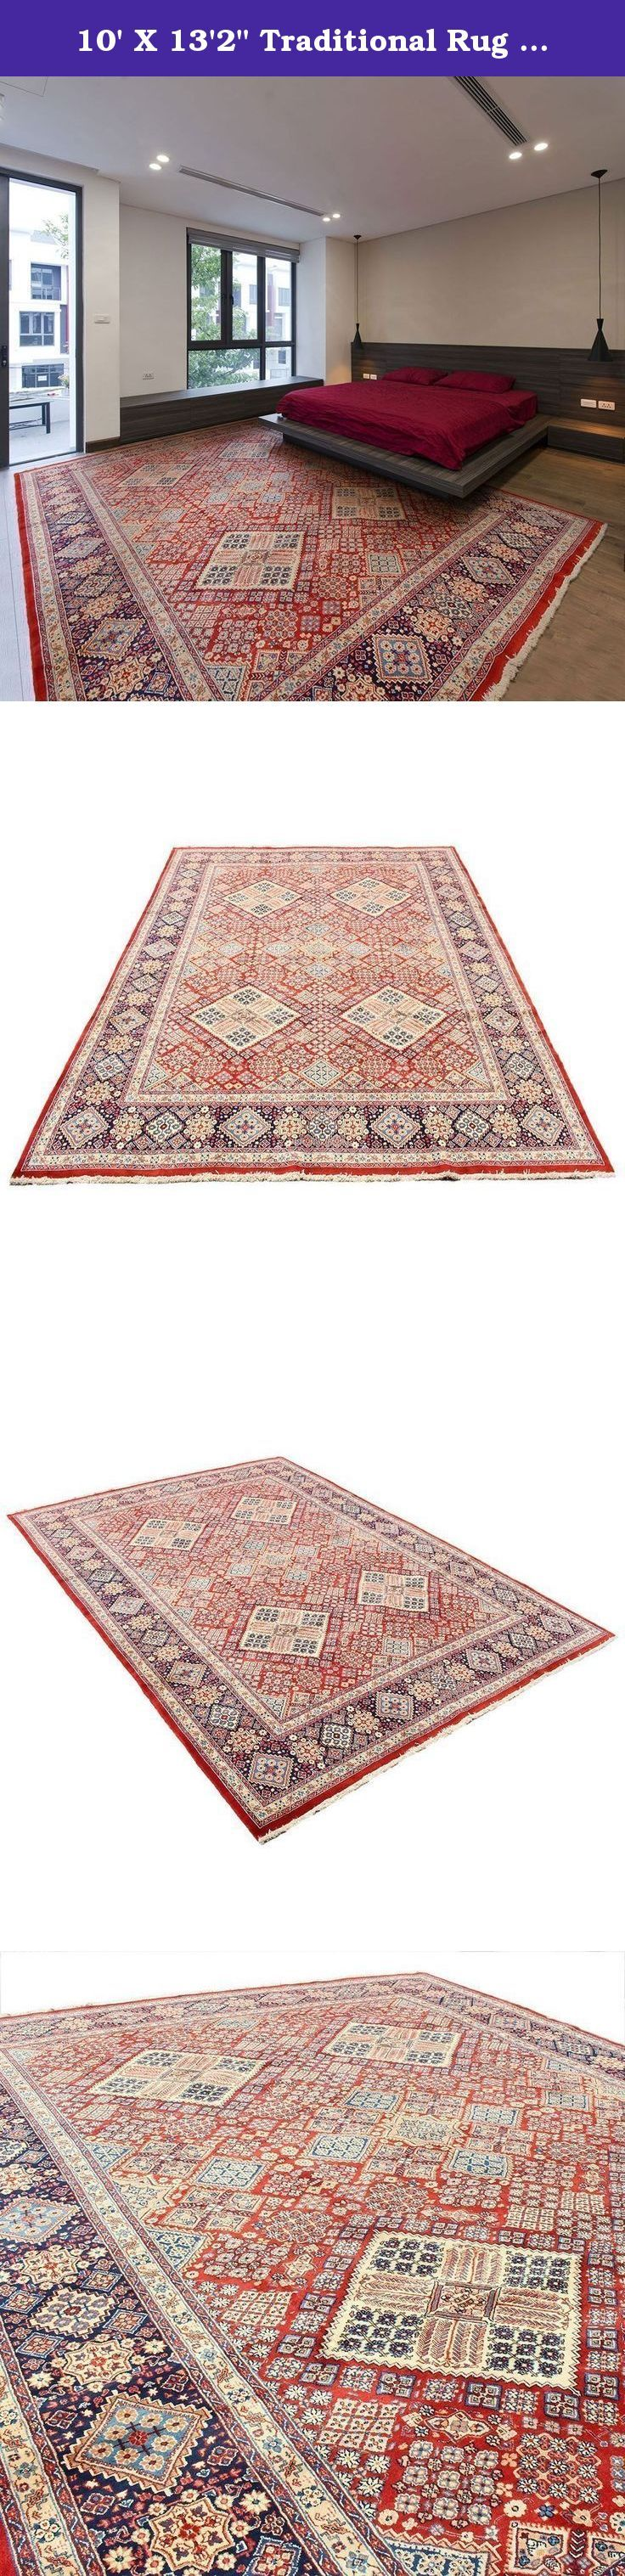 """10' X 13'2"""" Traditional Rug from 1800s , Very Unique Very Antique Rug Made of Merino Wool , Excellent Condition, Code:R0101318, Vintage Floor Rug, Oriental Area Rug, Traditional Fancy Carpet. Traditional designed hand woven rug which comes from pure lamb wool sheared at the Beginning of spring and a mixture of organic colors. It would make your place more attractive with its wonderful color. Really traditional and Classic design. As an advantages of years of being in this business our…"""